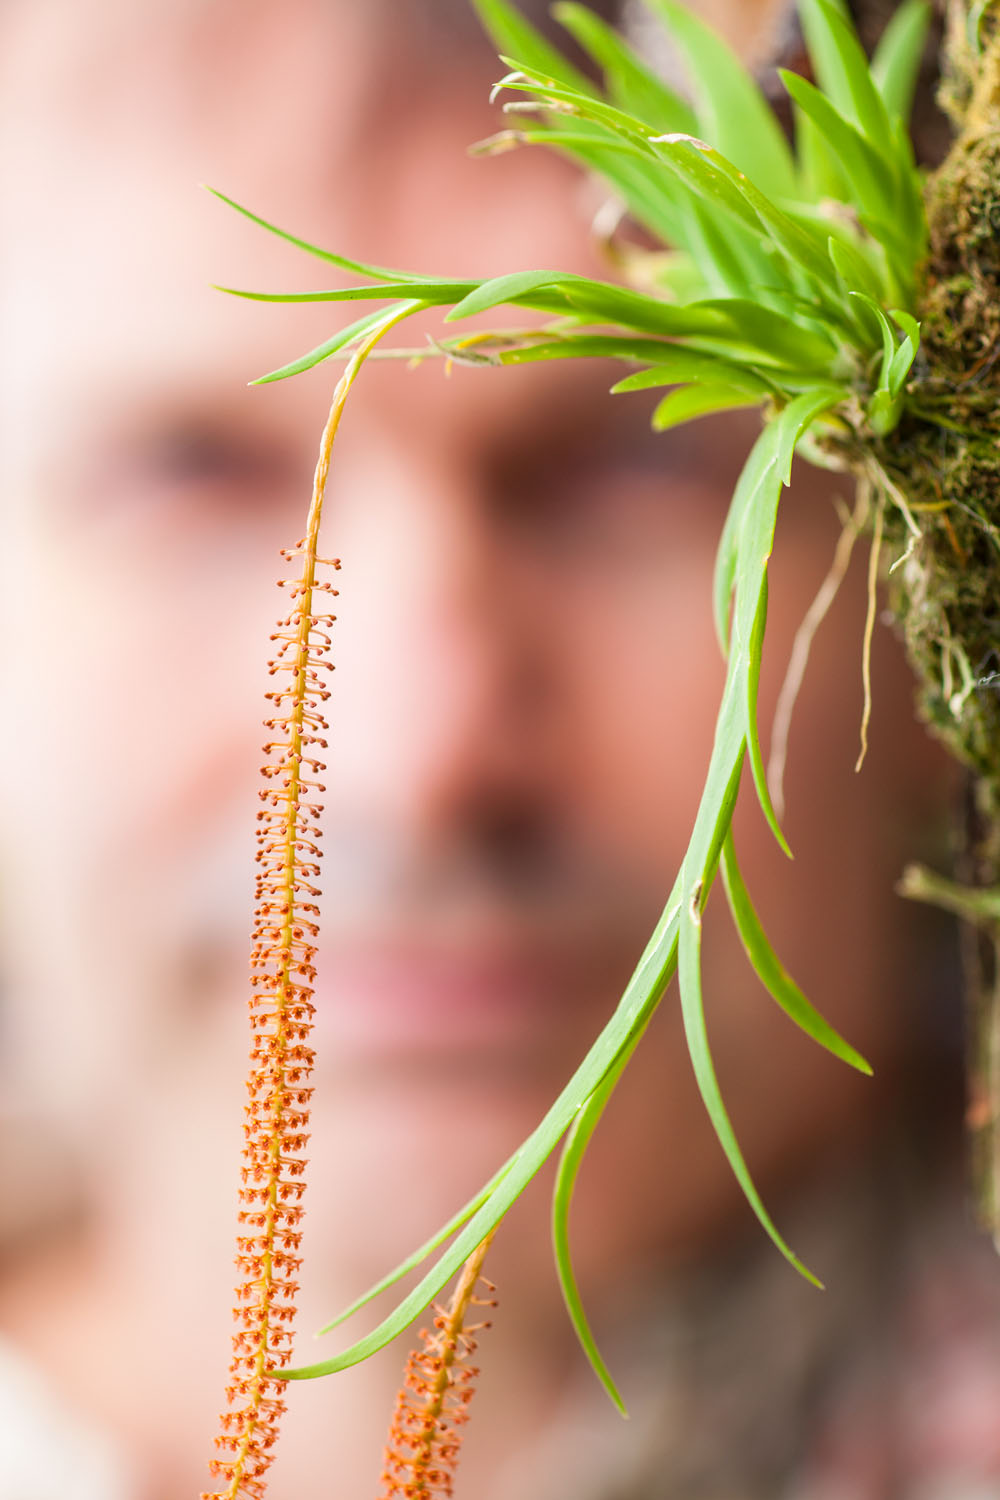 collector looking at a flower spike of micro orchids